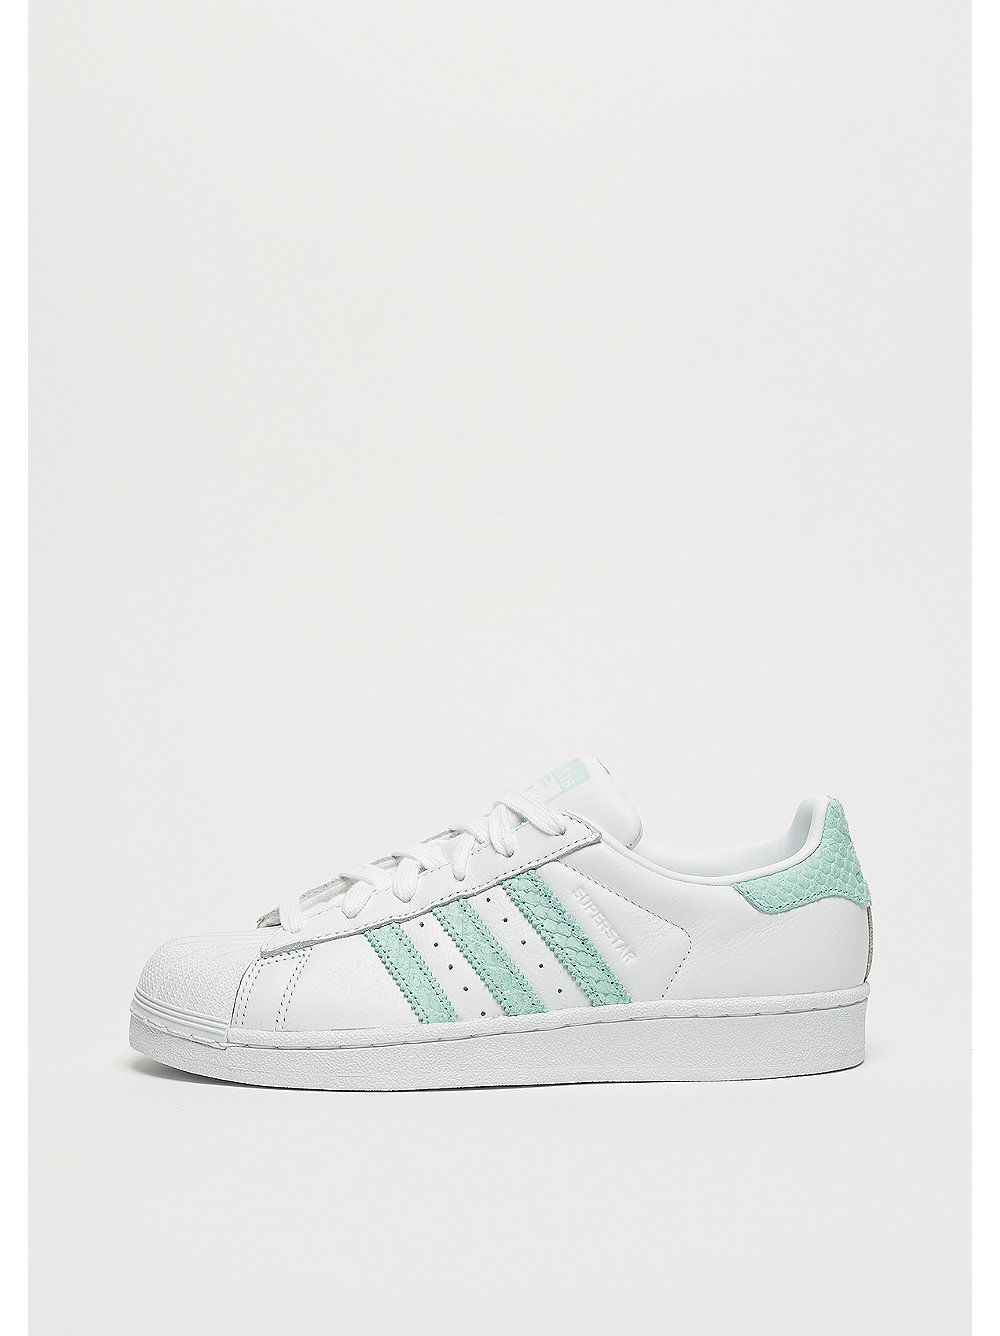 adidas Superstar W white-supplier colour-off white